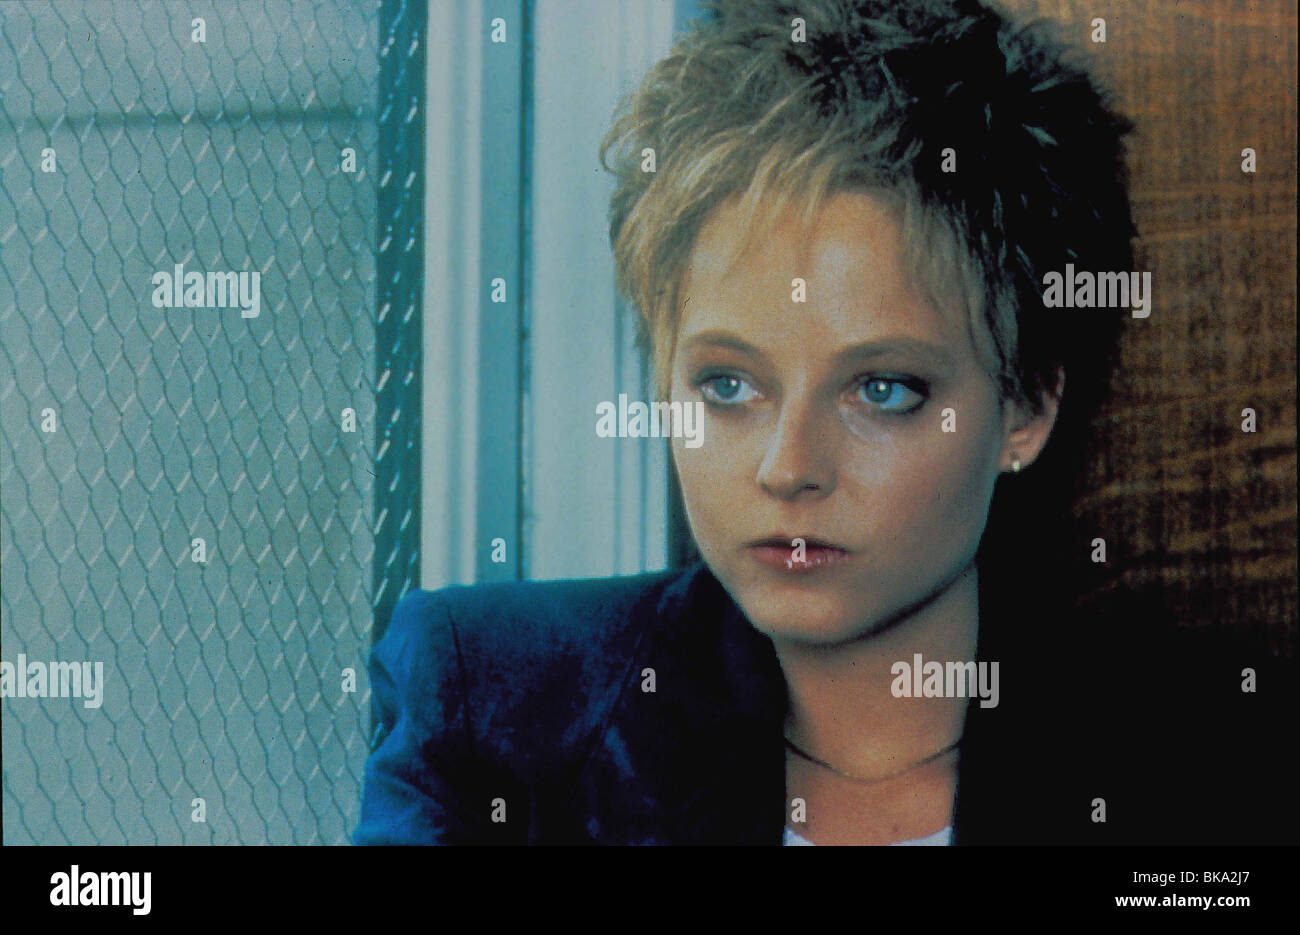 the accused 1988 jodie foster stock photo royalty image stock photo the accused 1988 jodie foster